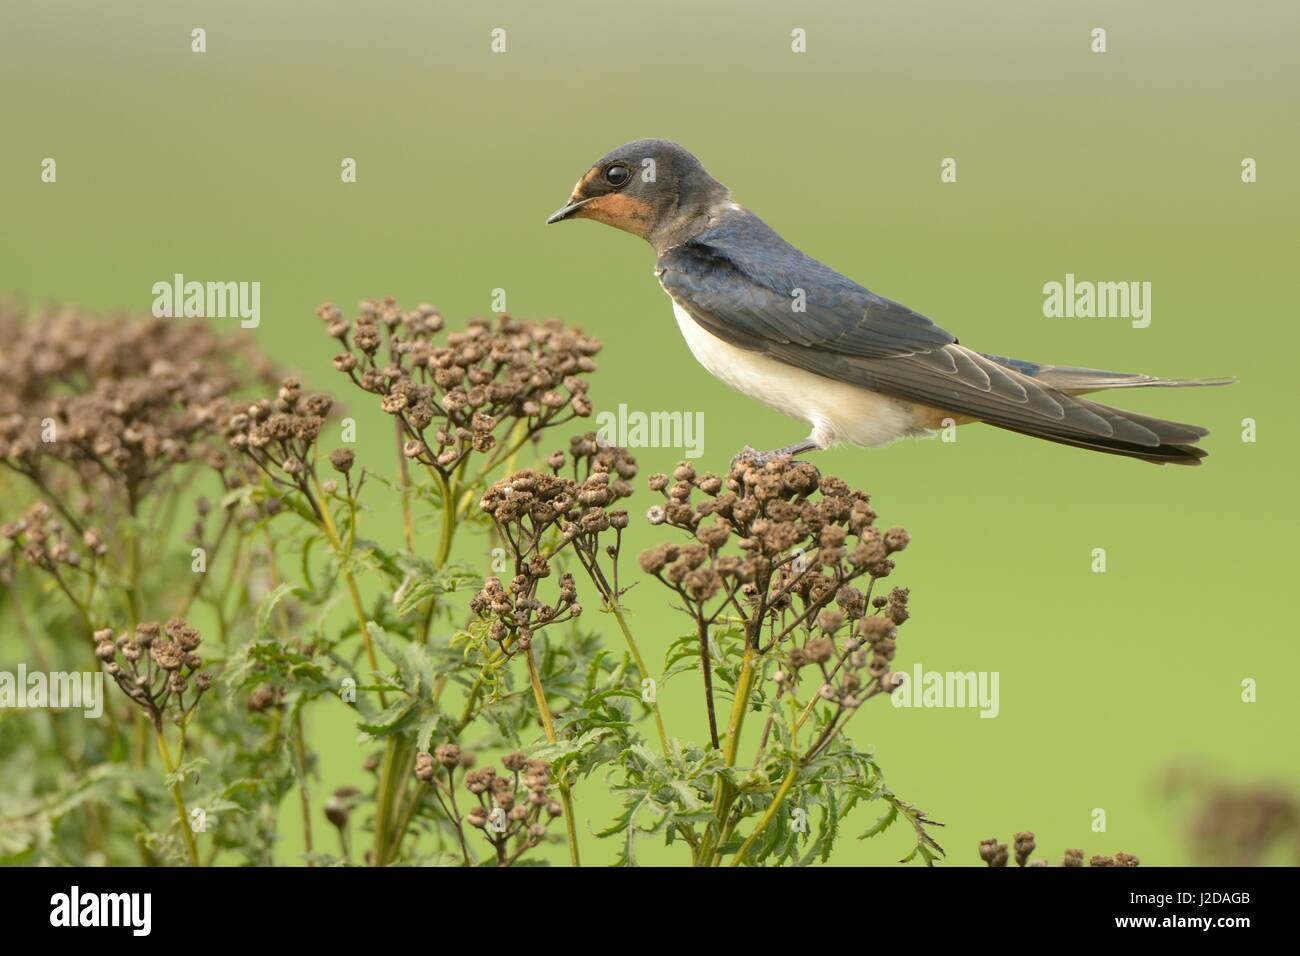 Juvenile Swallow perched on dawned Common Tansy - Stock Image